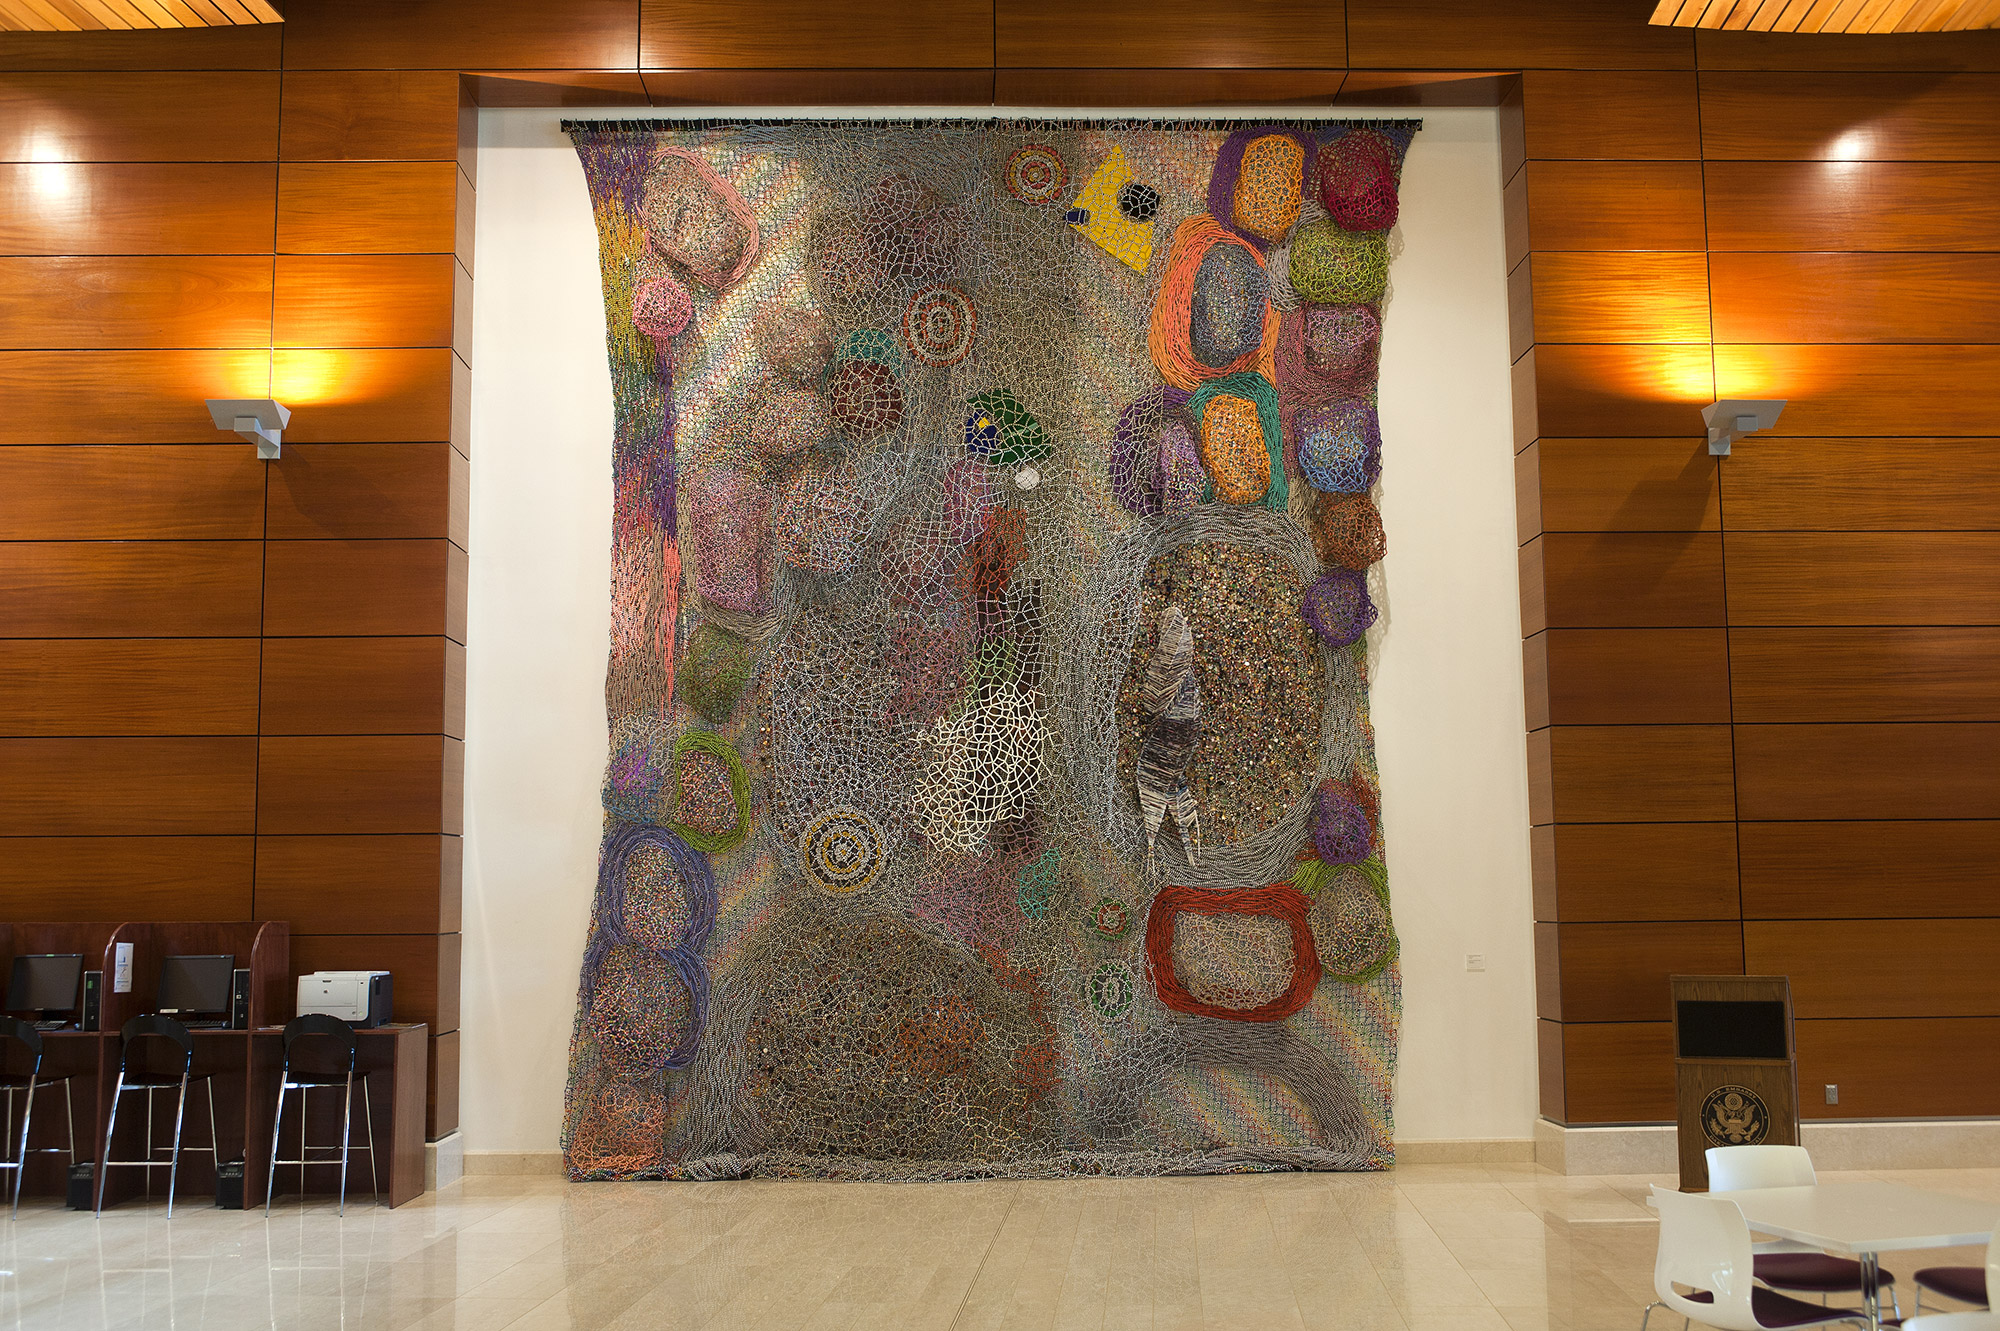 A Monumental Bas-Relief Sculpture by Nick Cave Connects Senegalese and U.S. Cultures in a Web of Beadwork